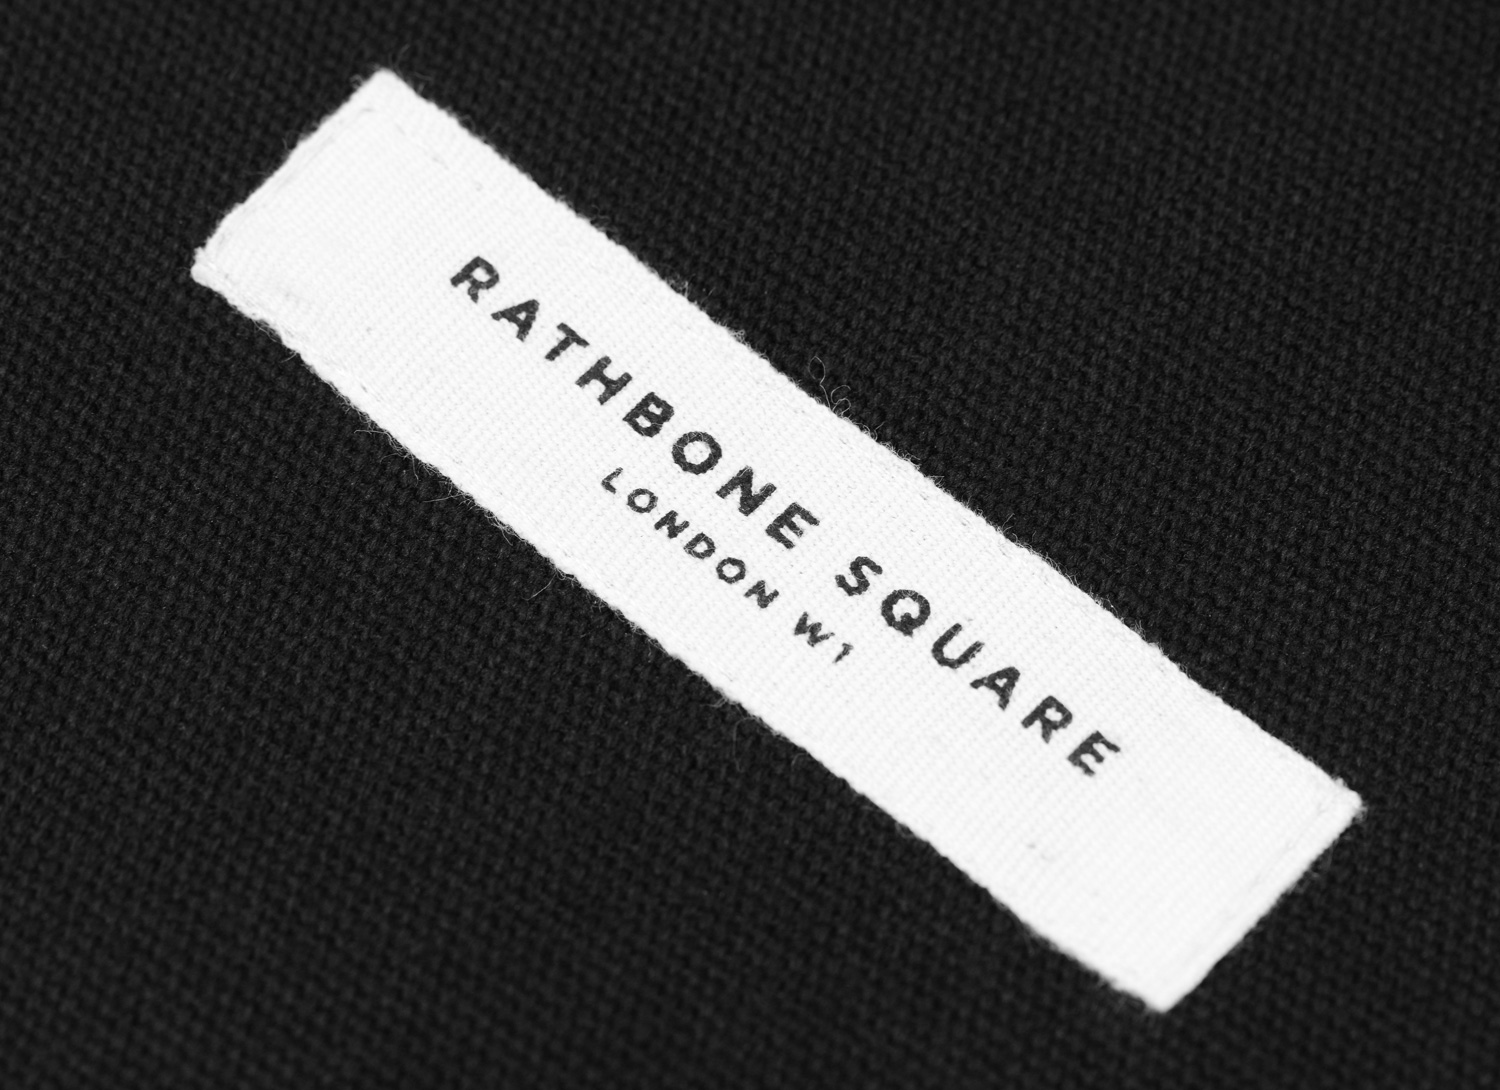 Progress Packaging Rathbone Square Property Leather Pocket Lining Hand Finished